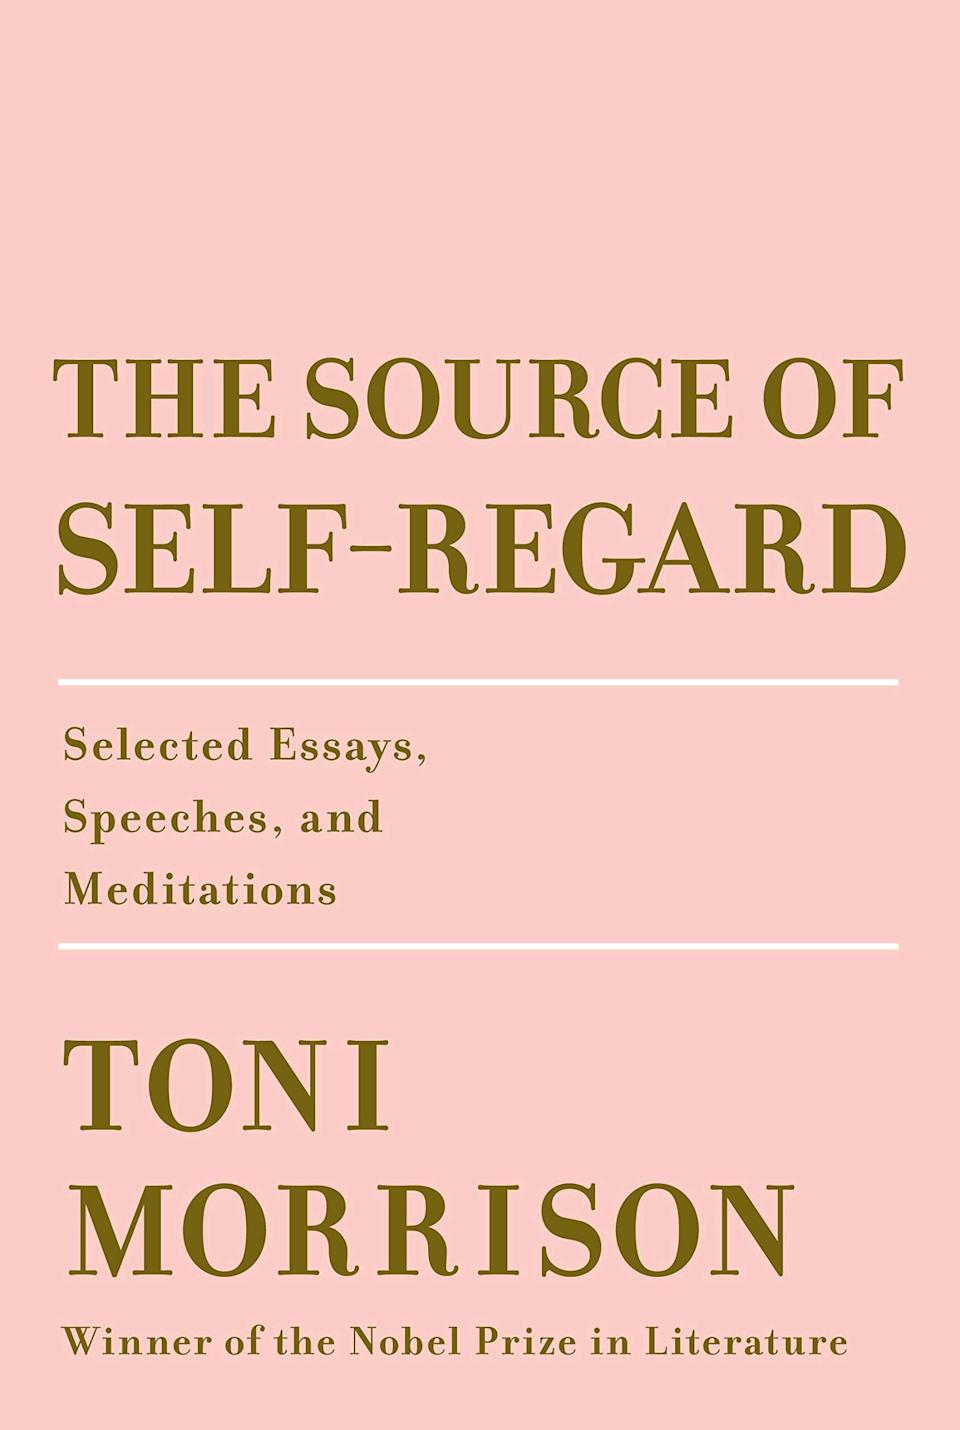 From the writer who gave us <em>Beloved,</em> <em>The Bluest Eye,</em> <em>Sula,</em> and so many other incredible classics, this nonfiction collection is a look back at her life and career, which ended with her death in August. In <em>The Source of Self-Regard,</em> Morrison compiled essays, speeches, and thoughts on culture over the past four decades. She writes about female empowerment, money, human rights, and black culture, and offers new commentary on her own novels. This book is an intimate look at this literary powerhouse—and a peek inside her mind.